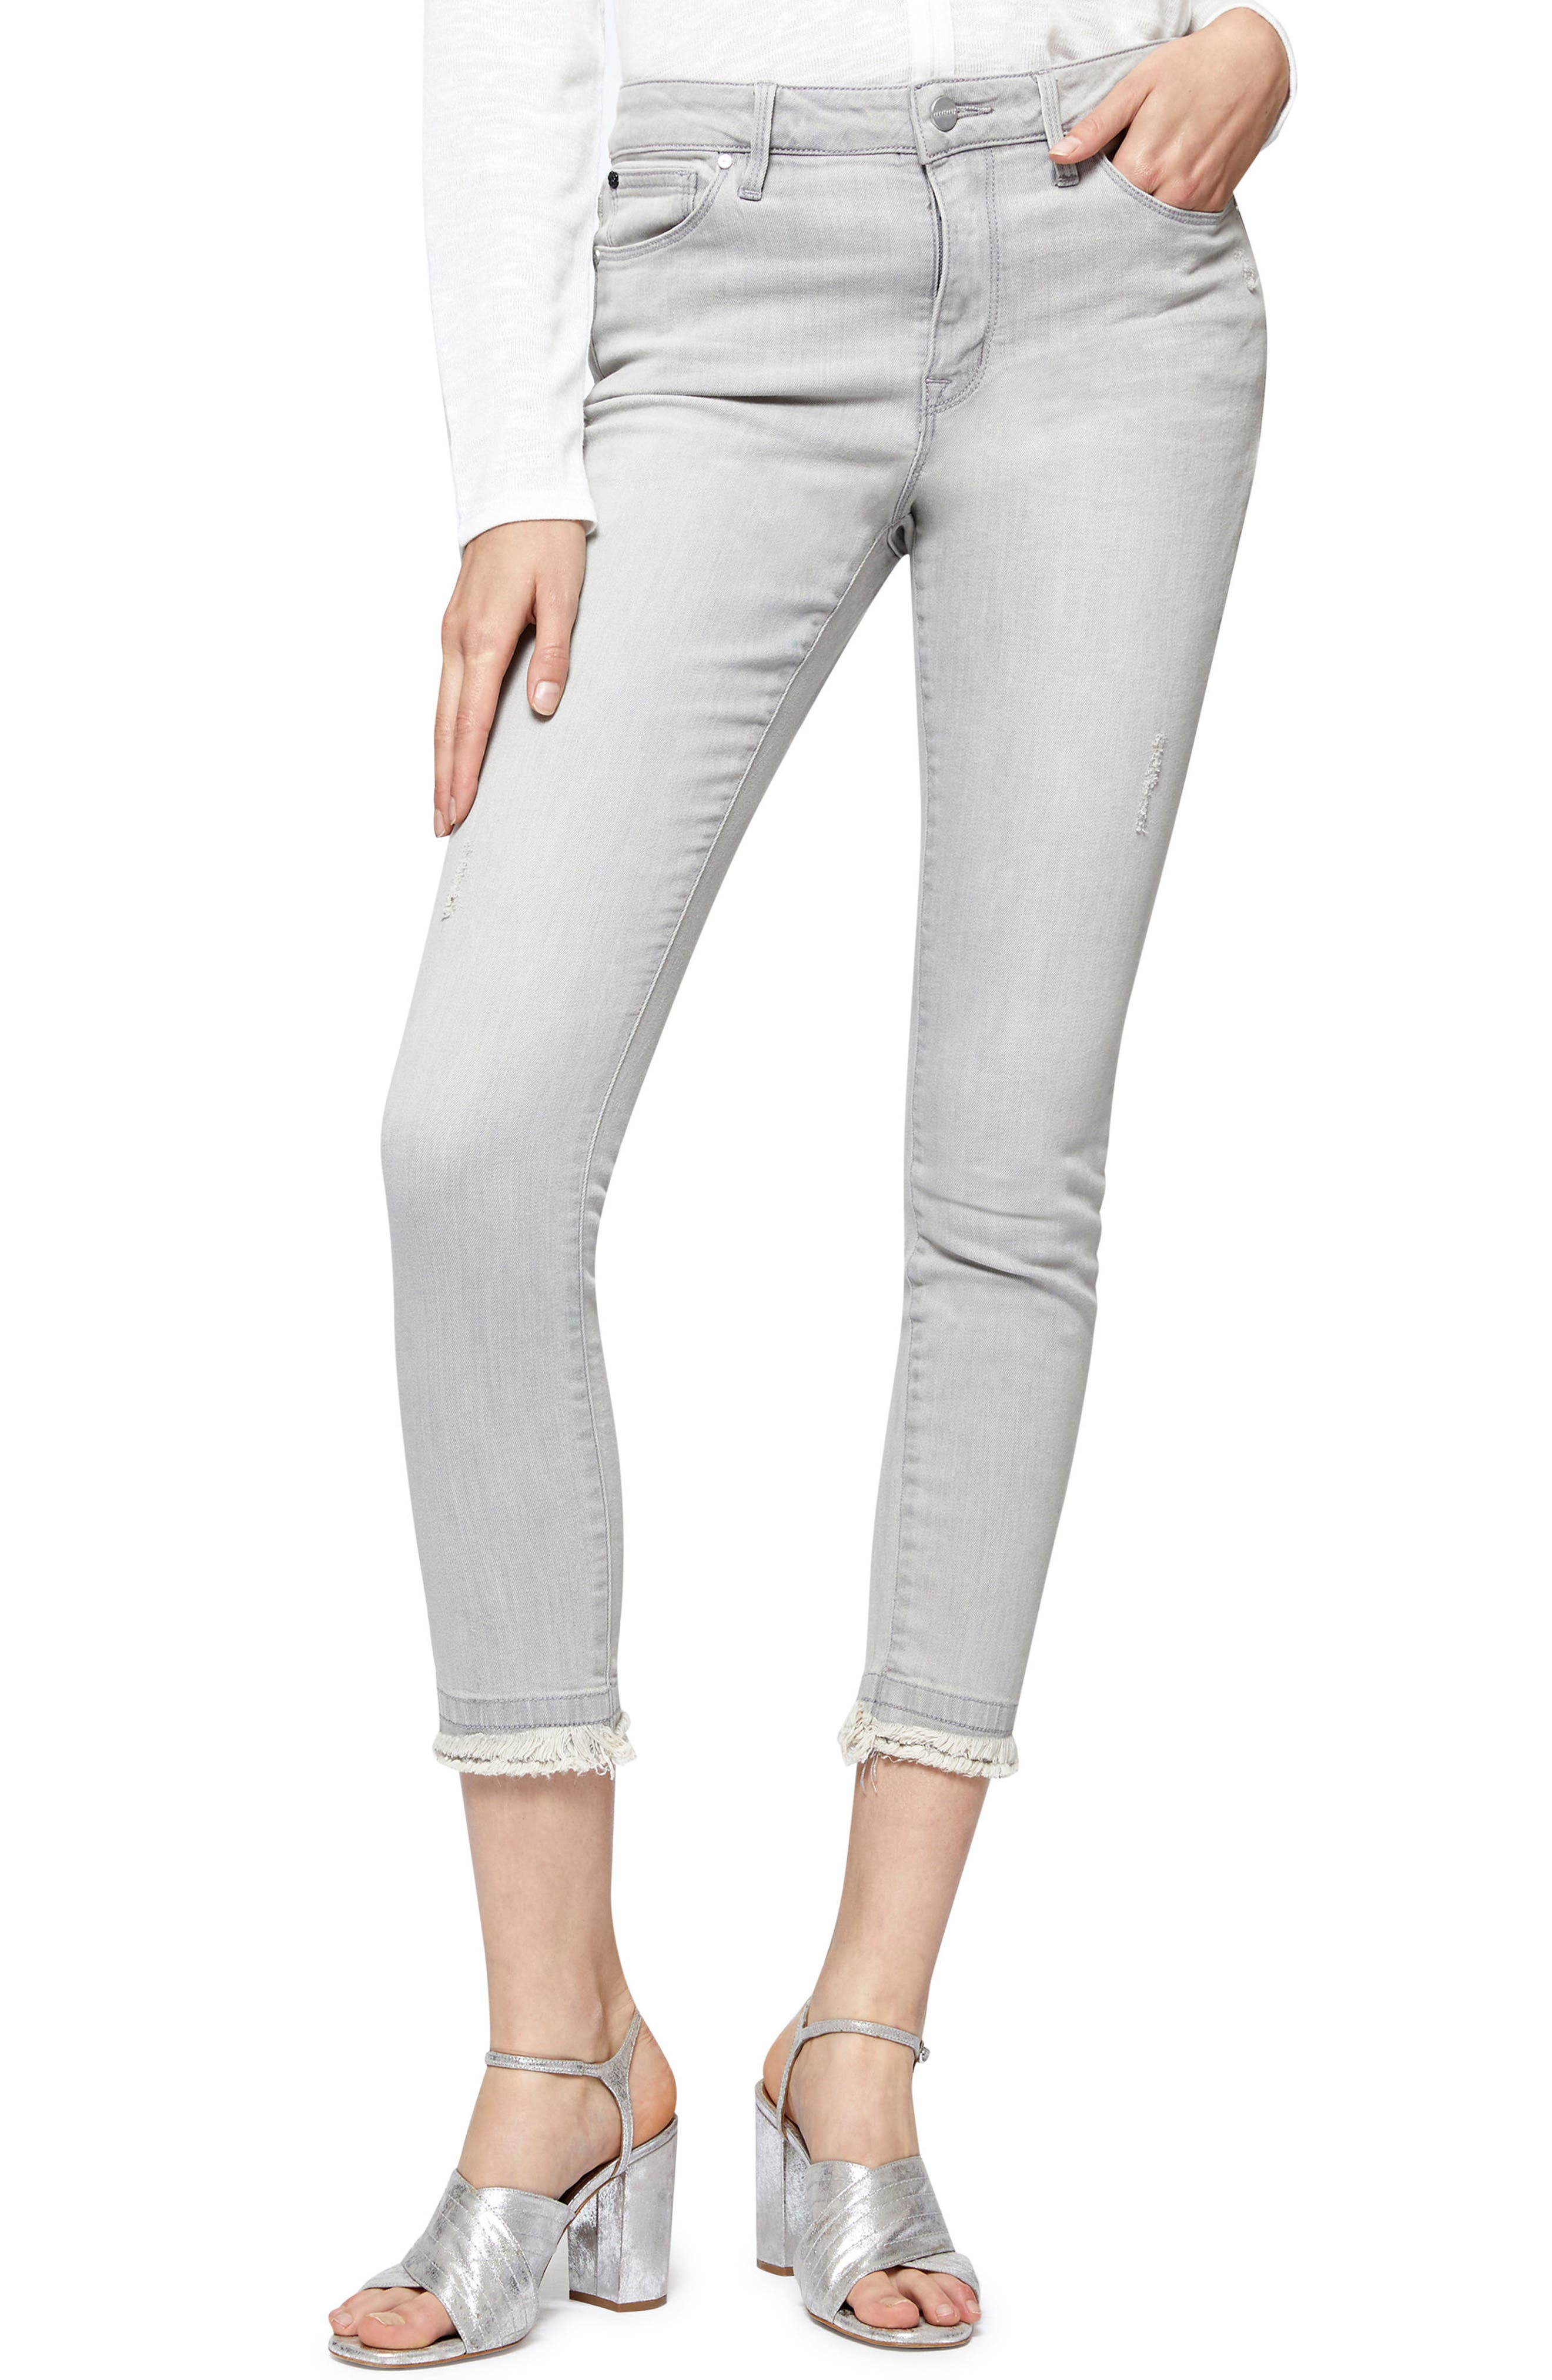 Alternate Image 1 Selected - Sanctuary Saige Double Fray Ankle Jeans (Greyson)